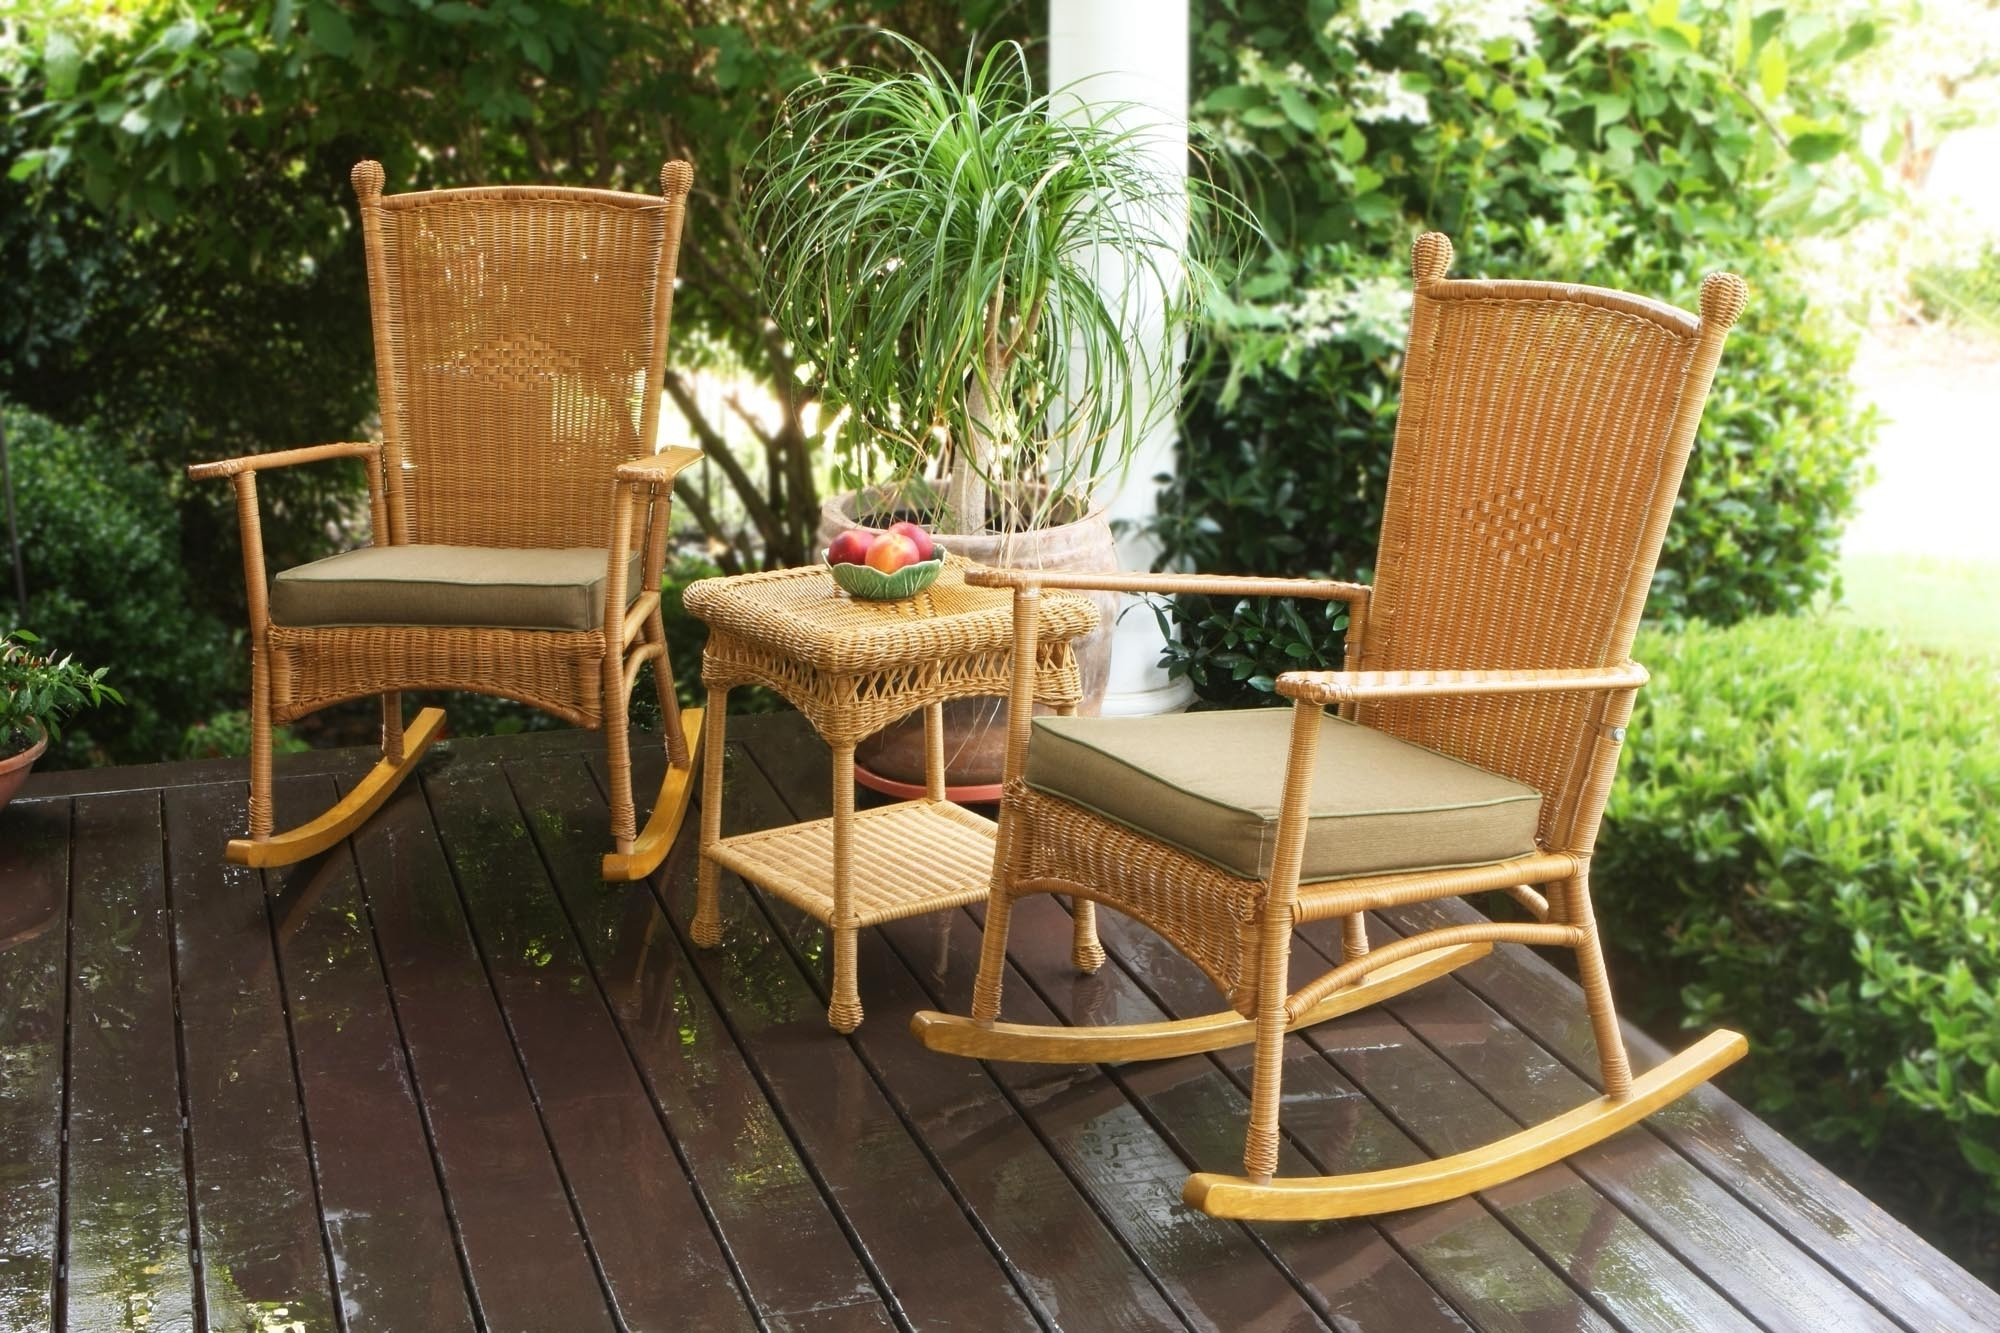 Most Current Outdoor Rocking Chair Garden Porch Furniture Rocker Patio Black Intended For Rocking Chairs For Garden (View 6 of 15)